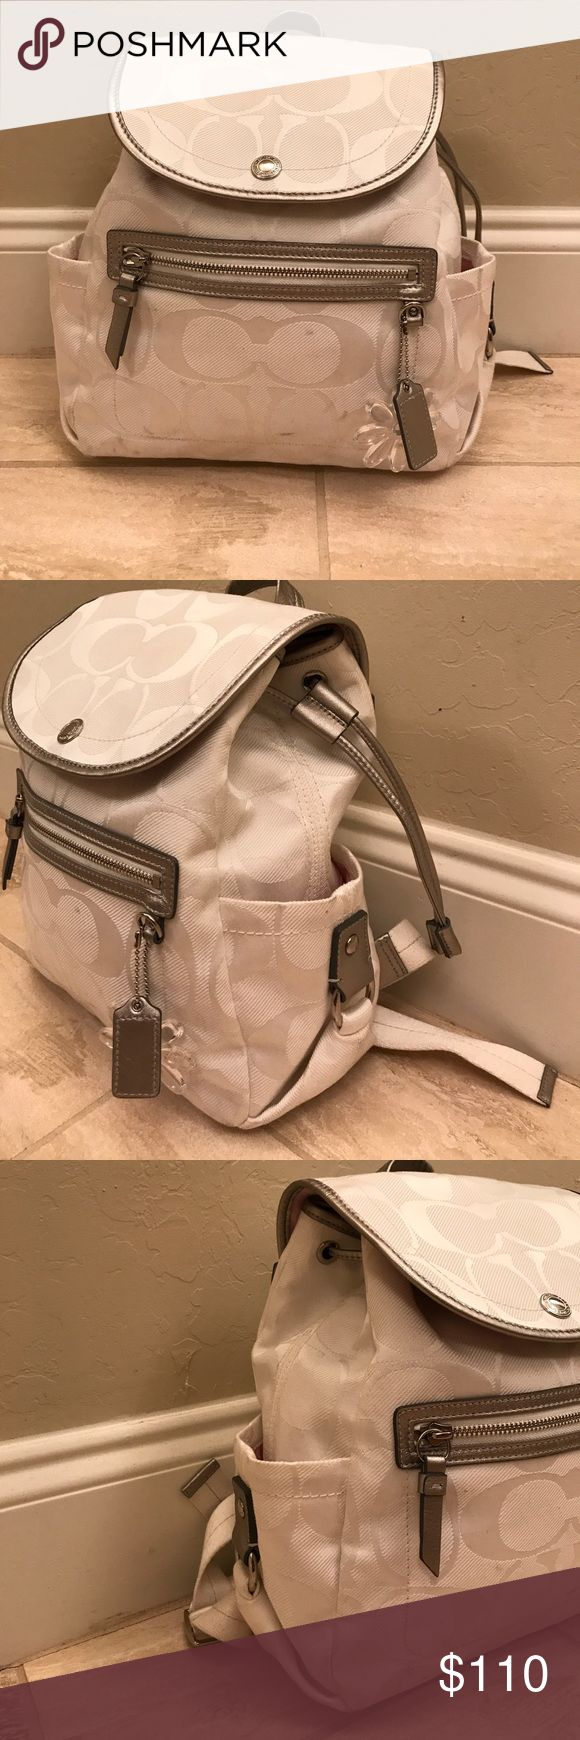 White Coach Backpack Mini white coach backpack with light pink interior. Coach Bags Backpacks